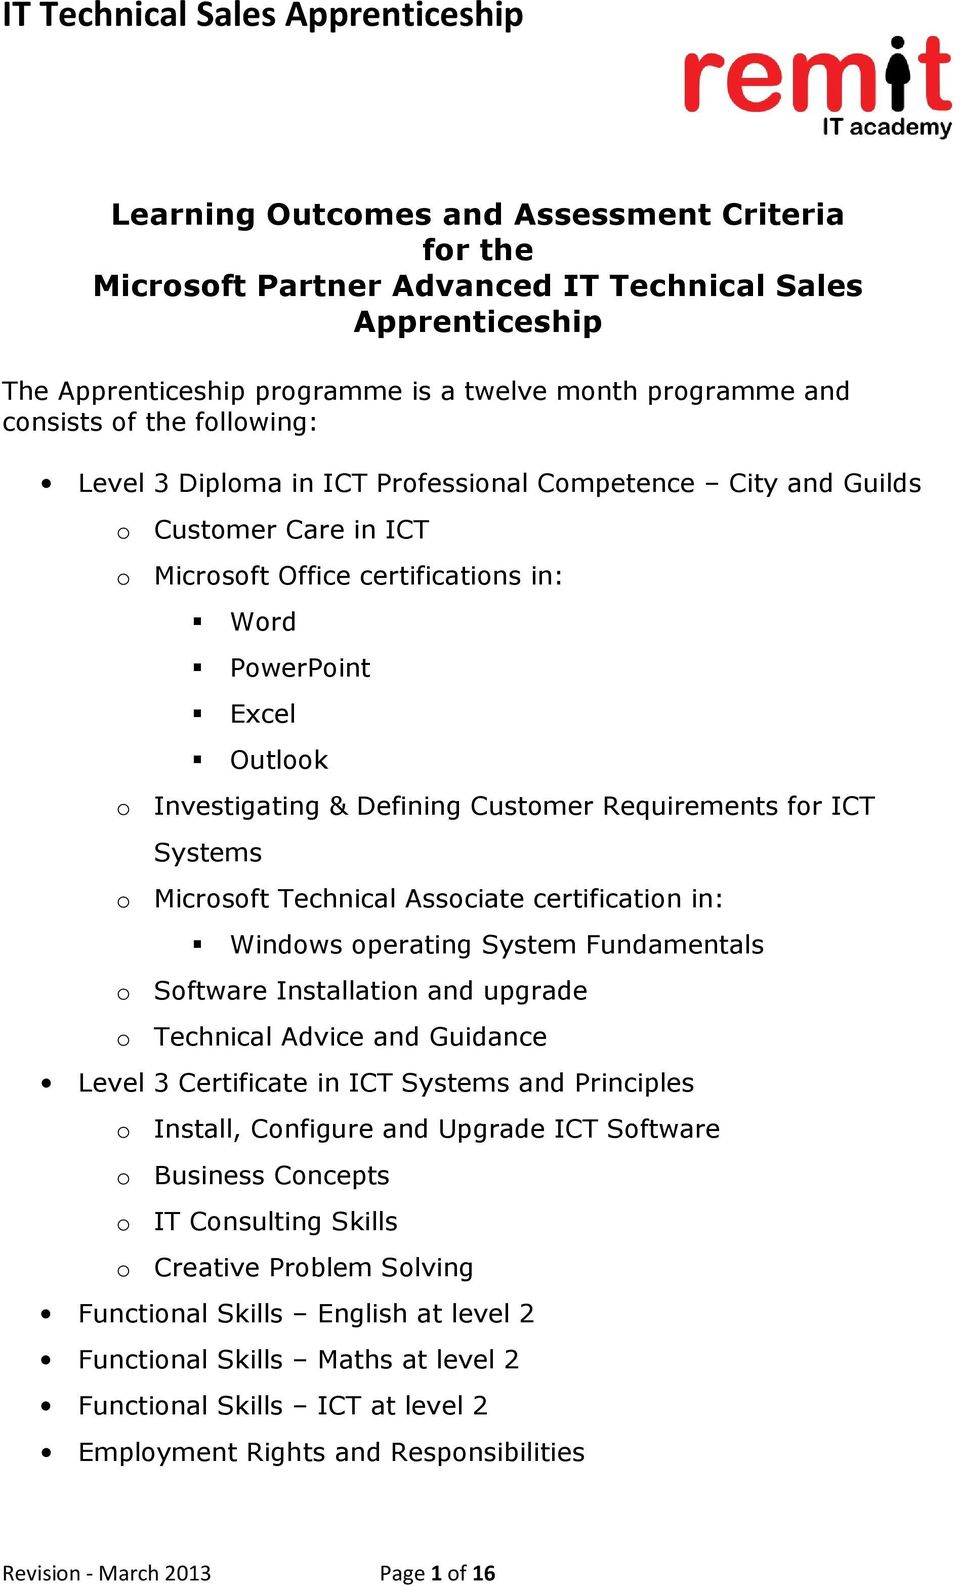 it technical s apprenticeship pdf requirements for ict systems o microsoft technical associate certification in windows operating system fundamentals o